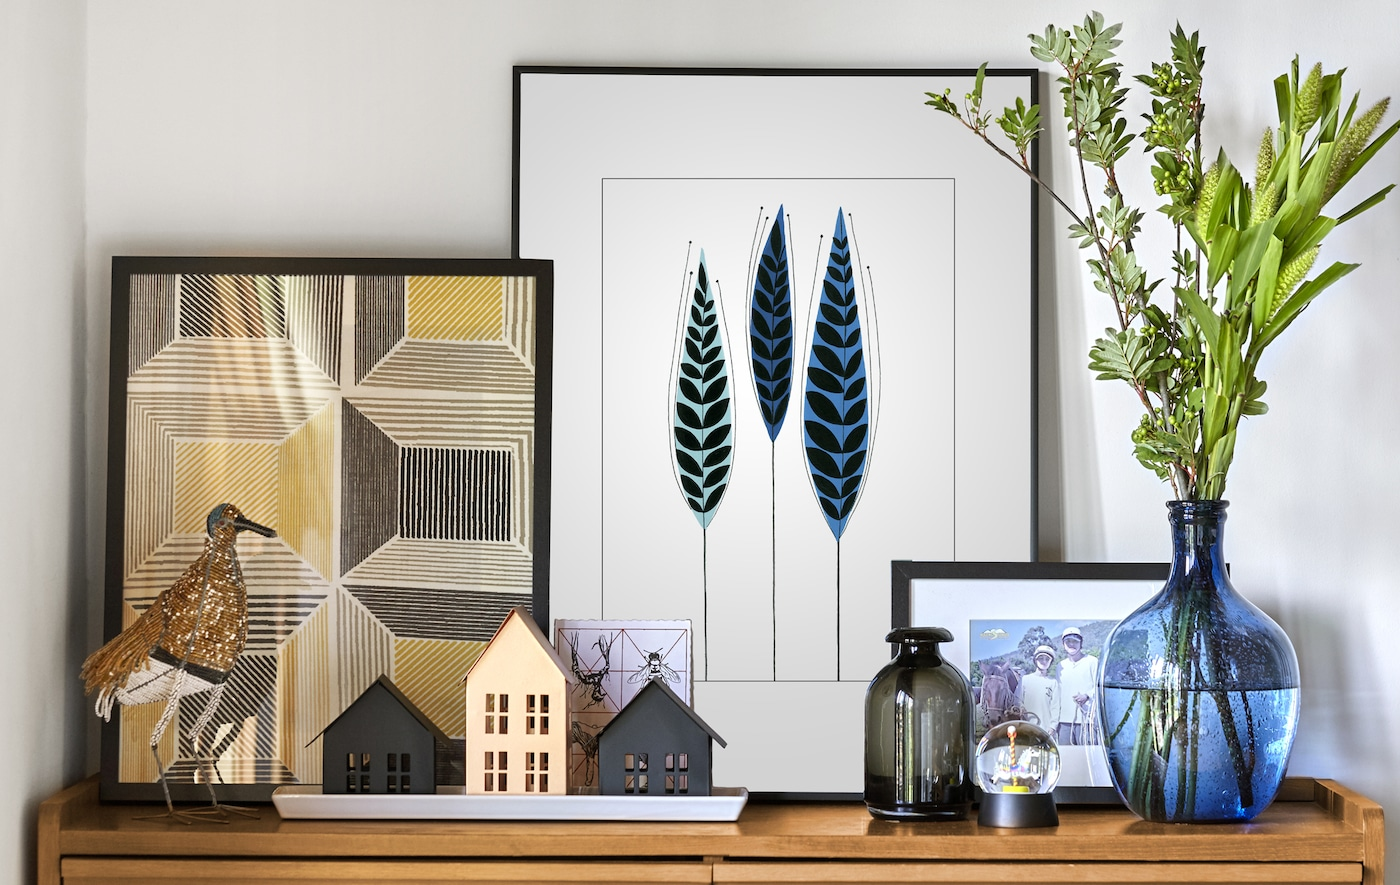 Layered pictures, ornaments, and vases on a natural wood cabinet in a white room.